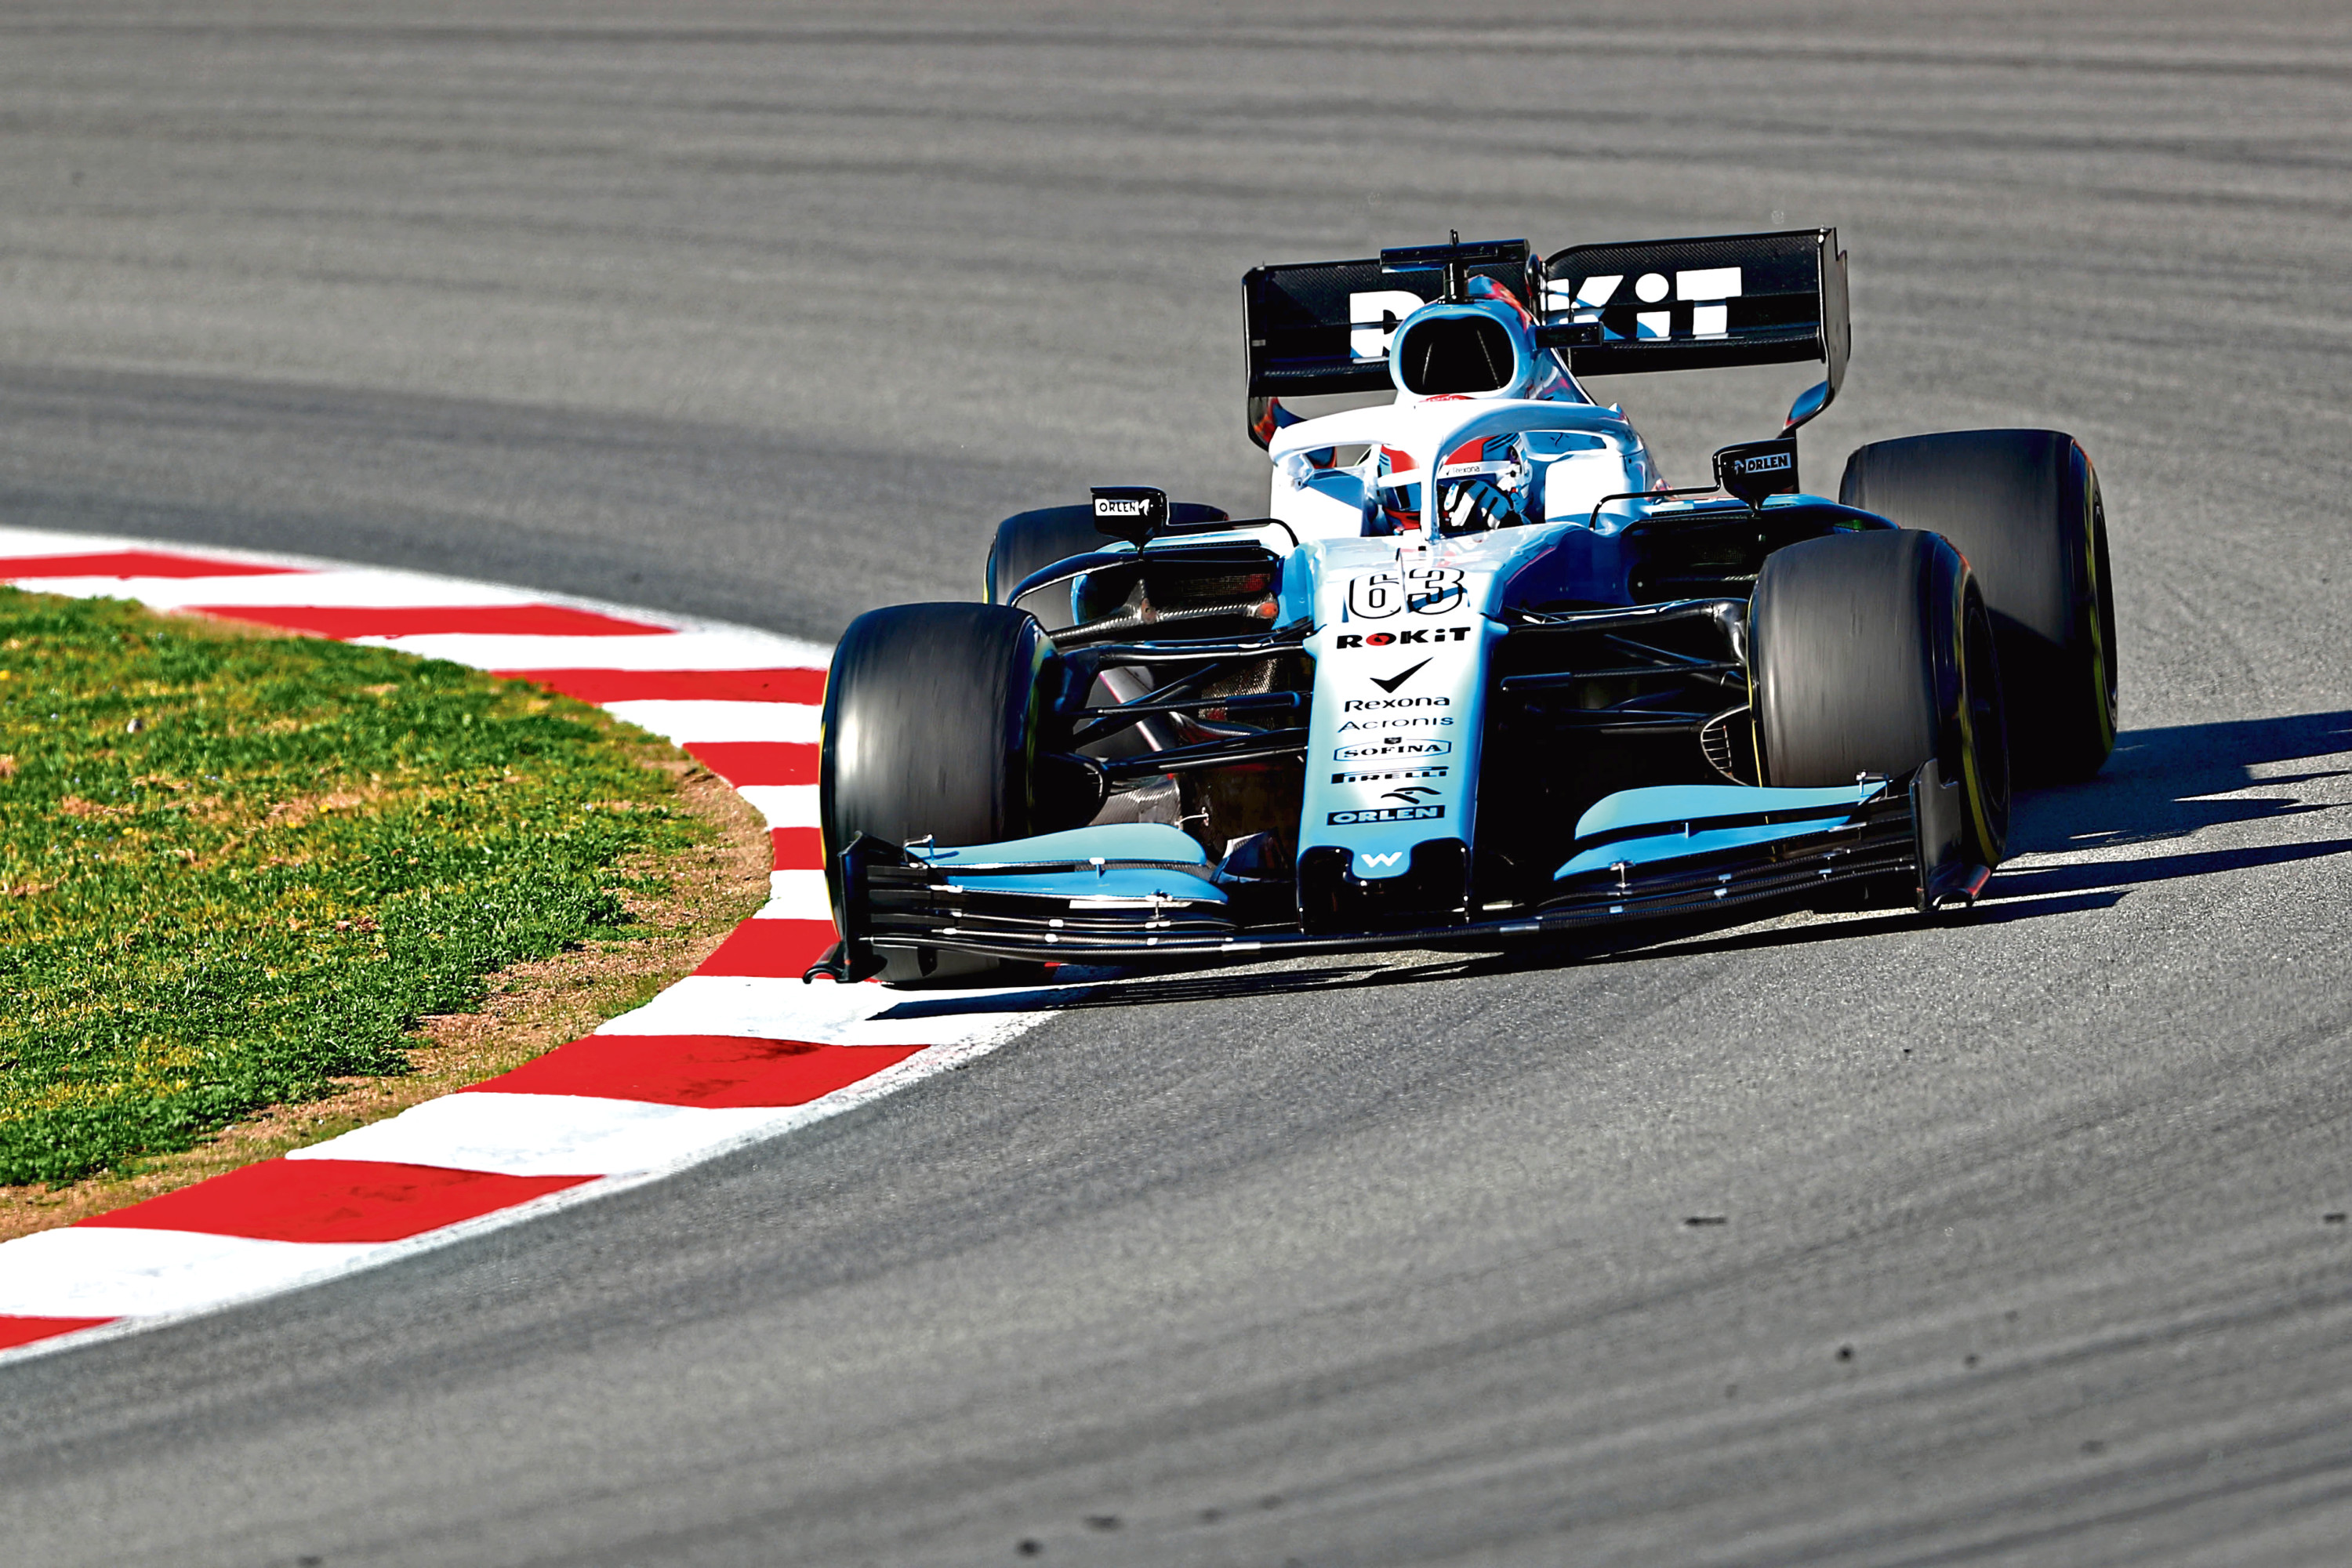 MONTMELO, SPAIN - FEBRUARY 26: George Russell of Great Britain driving the (63) Rokit Williams Racing FW42 Mercedes on track during day one of F1 Winter Testing at Circuit de Catalunya on February 26, 2019 in Montmelo, Spain. (Photo by Dan Istitene/Getty Images)